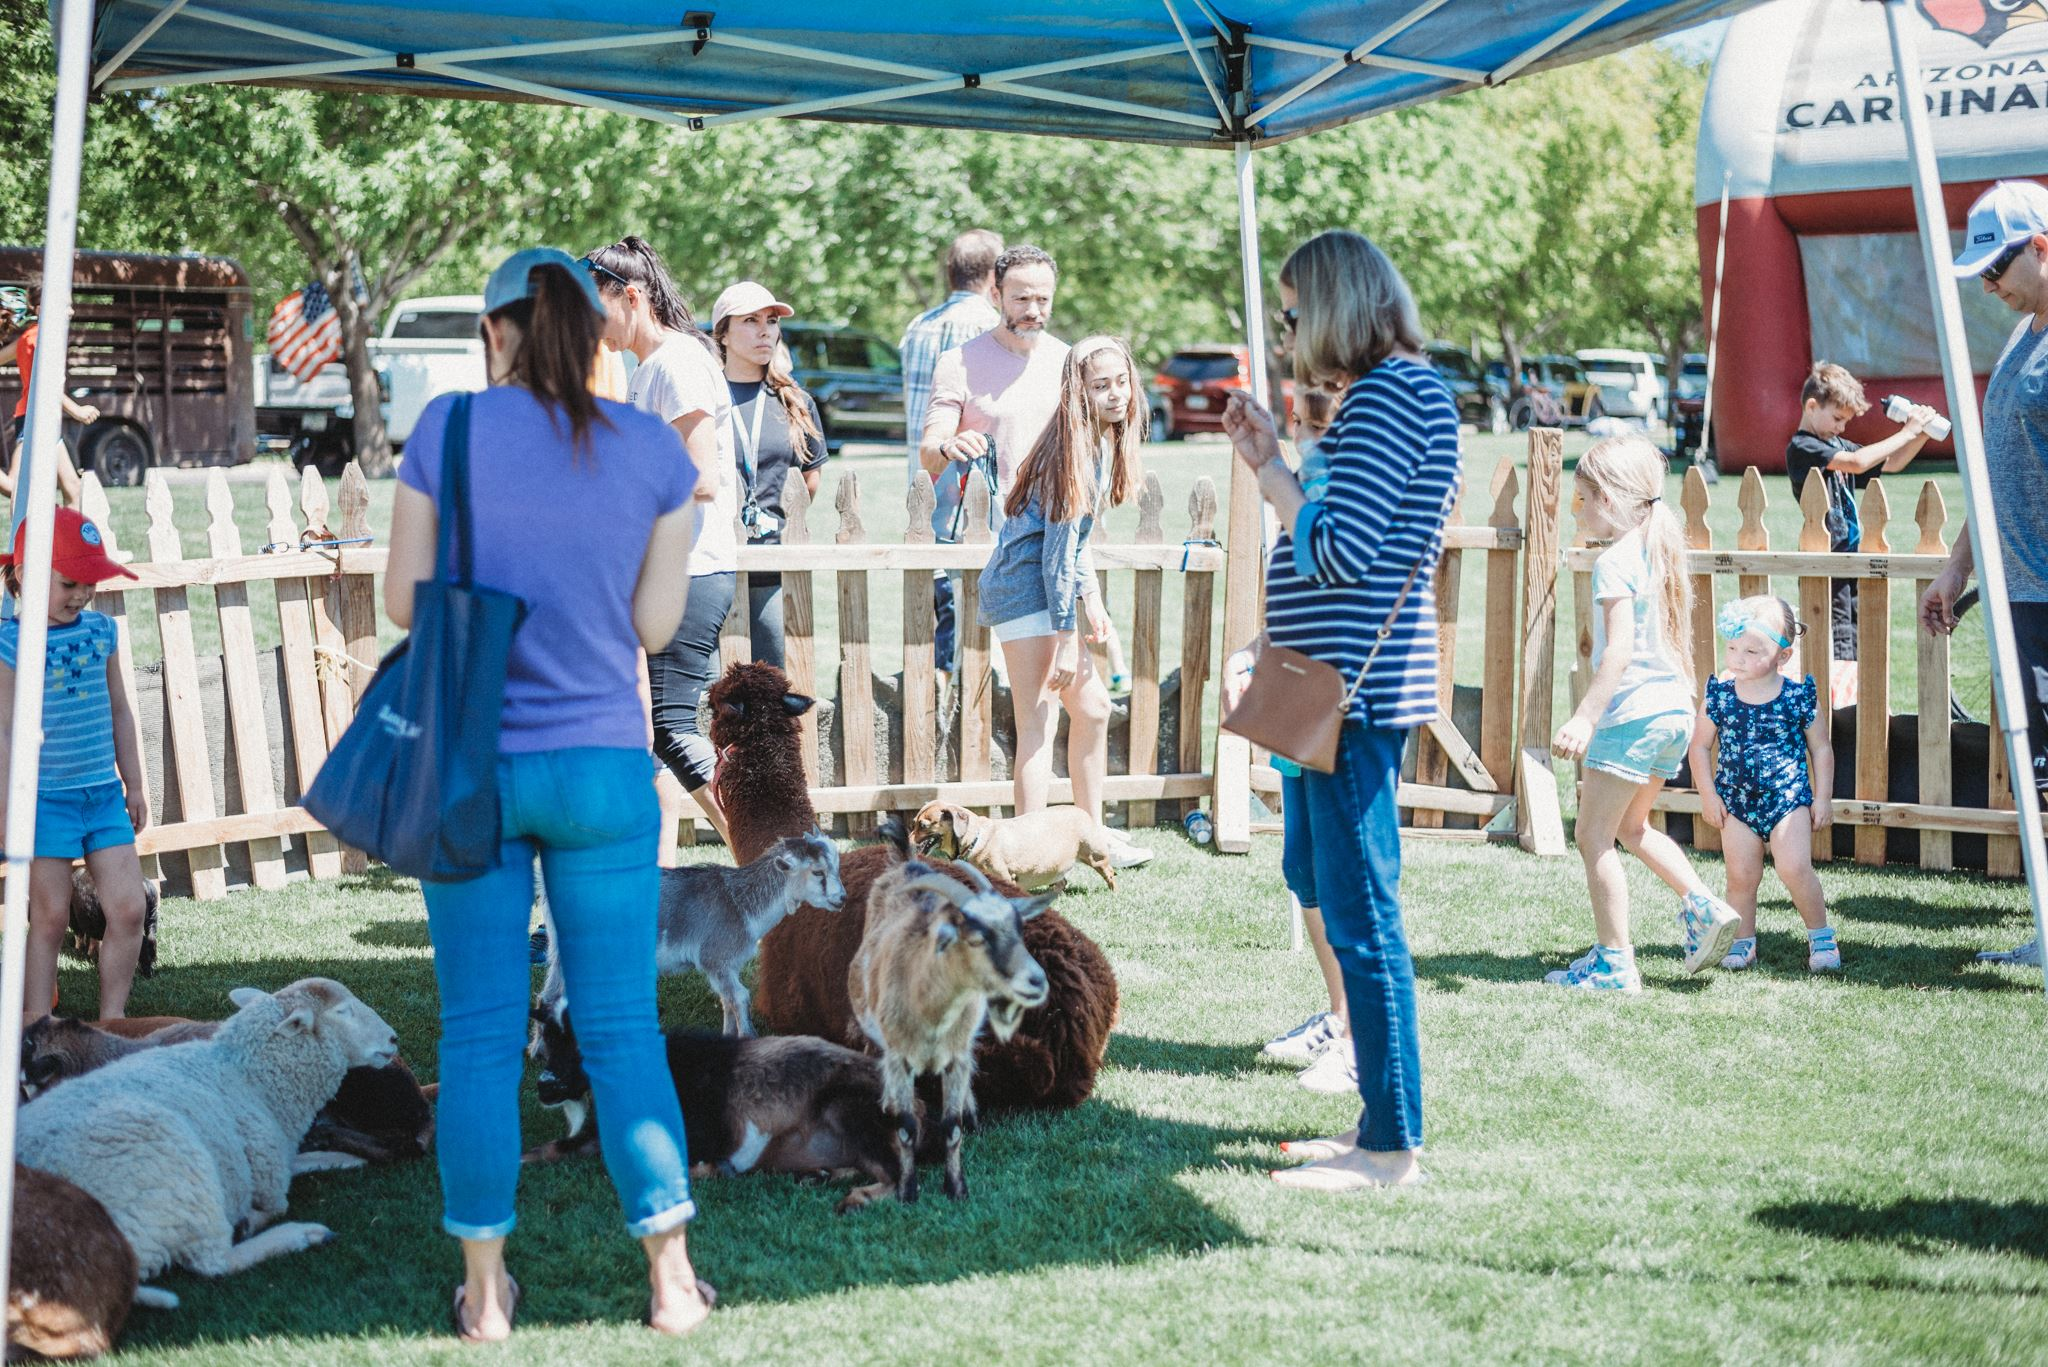 Women Looking at Petting Zoo Goats